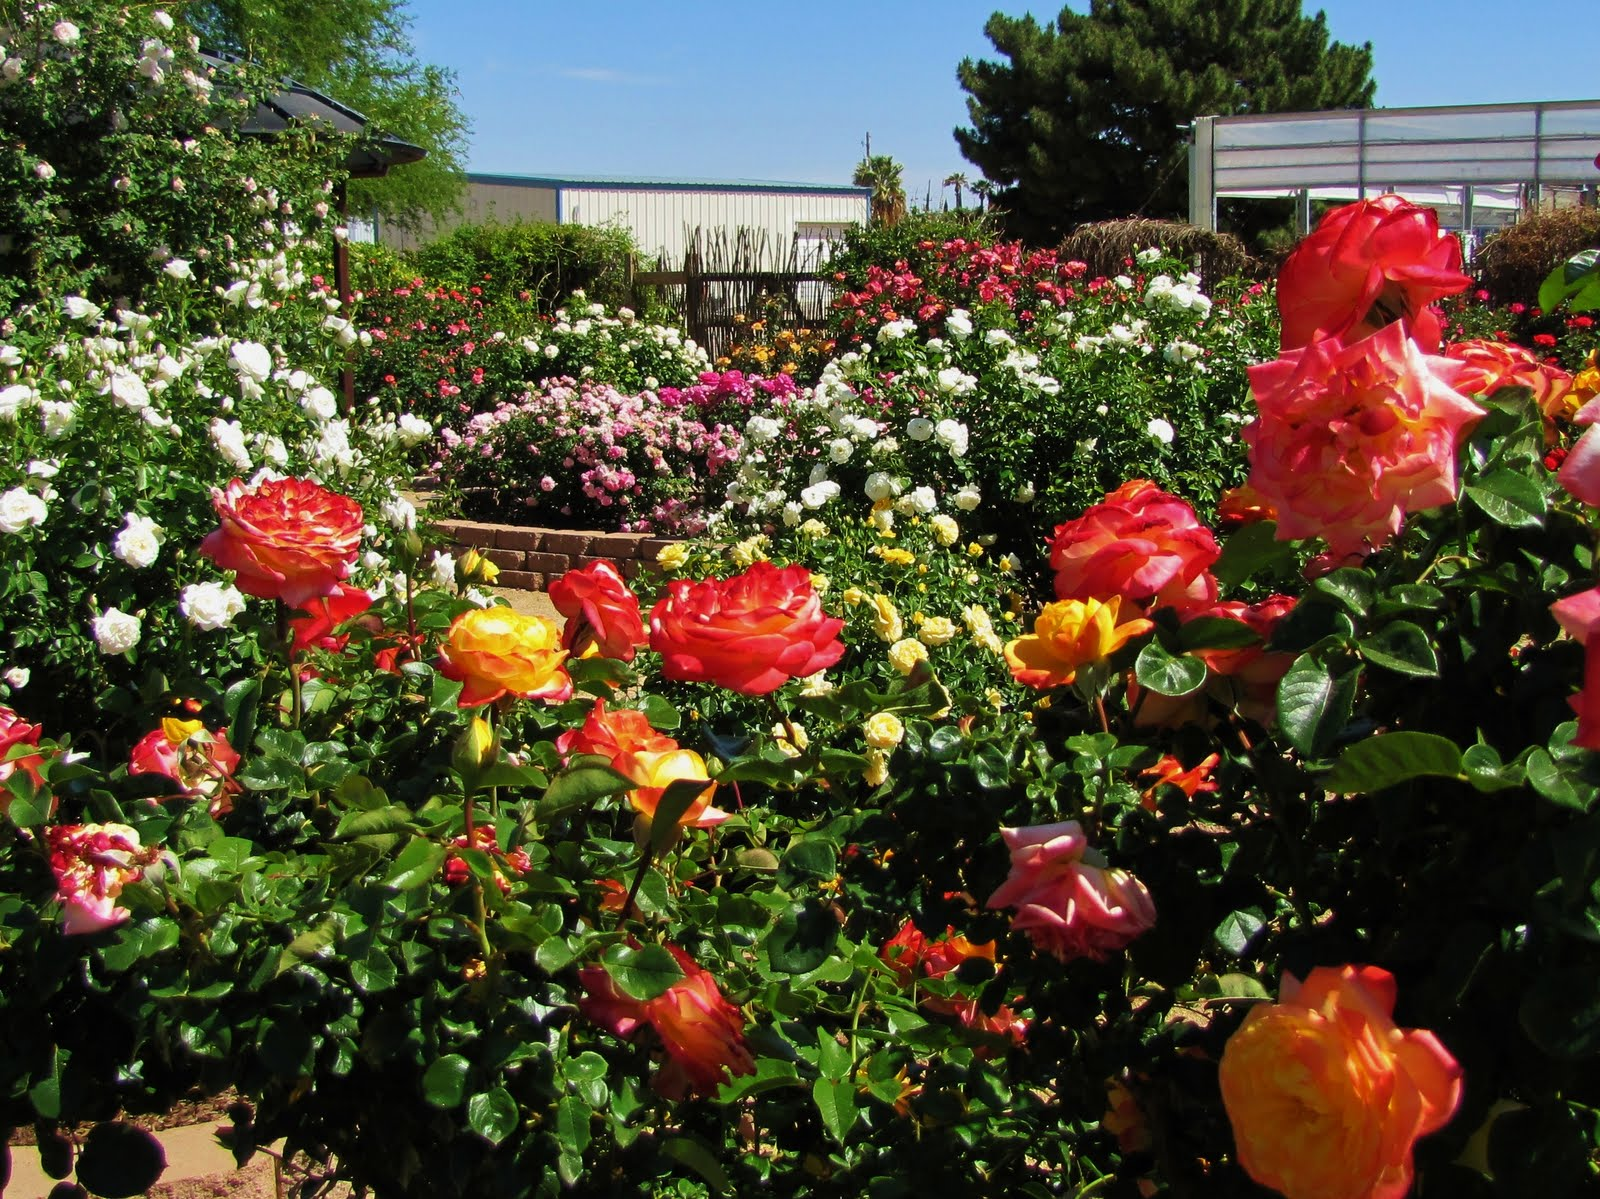 Right Now Is Prime Time Rose Season In Tucson. There Is Something To Be  Said About Rose Gardens And The Magic They Bring Twice A Year.